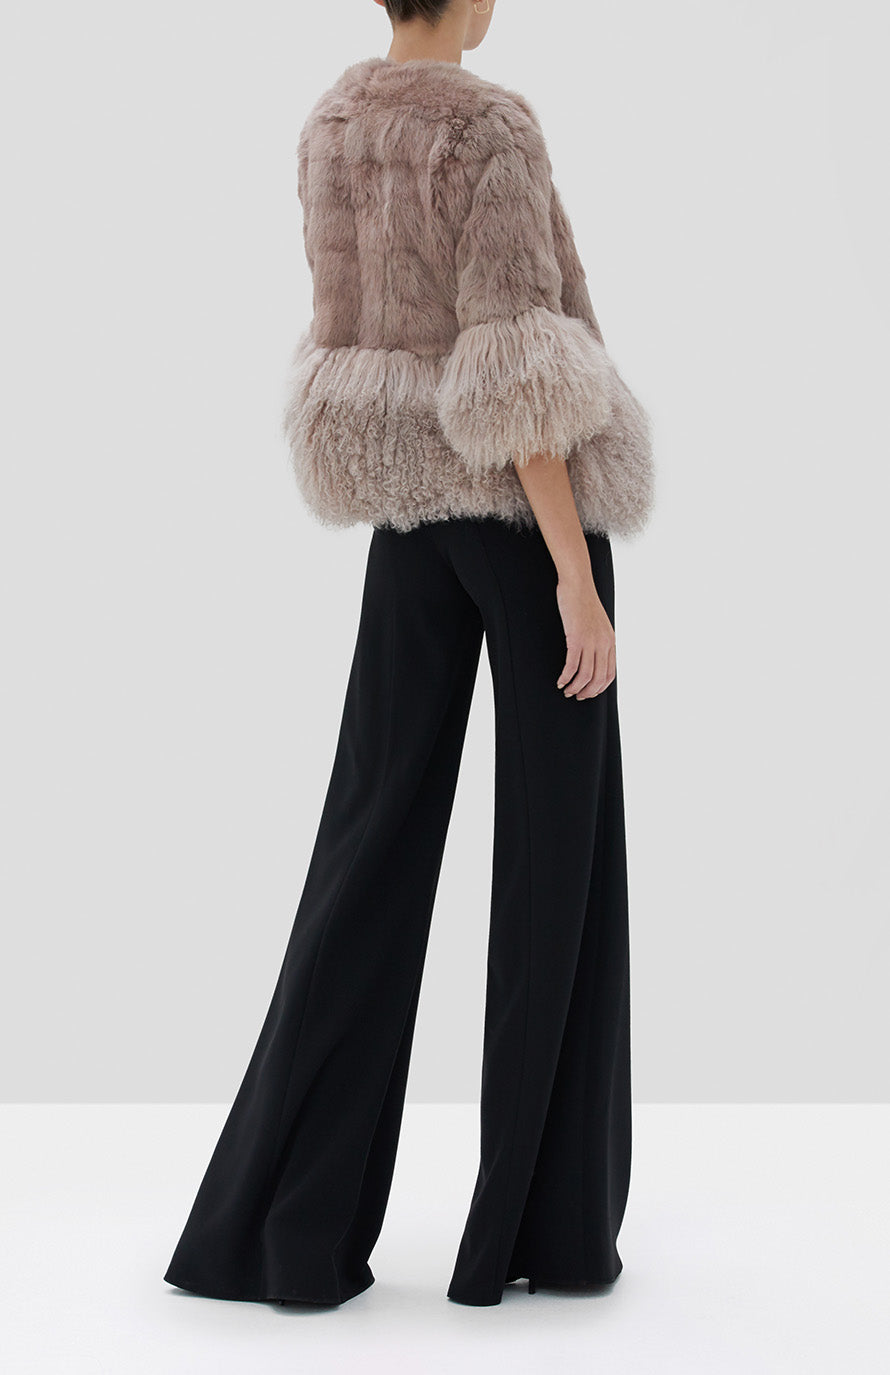 Alexis Sawyer Fur Jacket in Blush and Irvine Pant in Black from the Fall Winter 2019 Ready To Wear Collection - Rear View